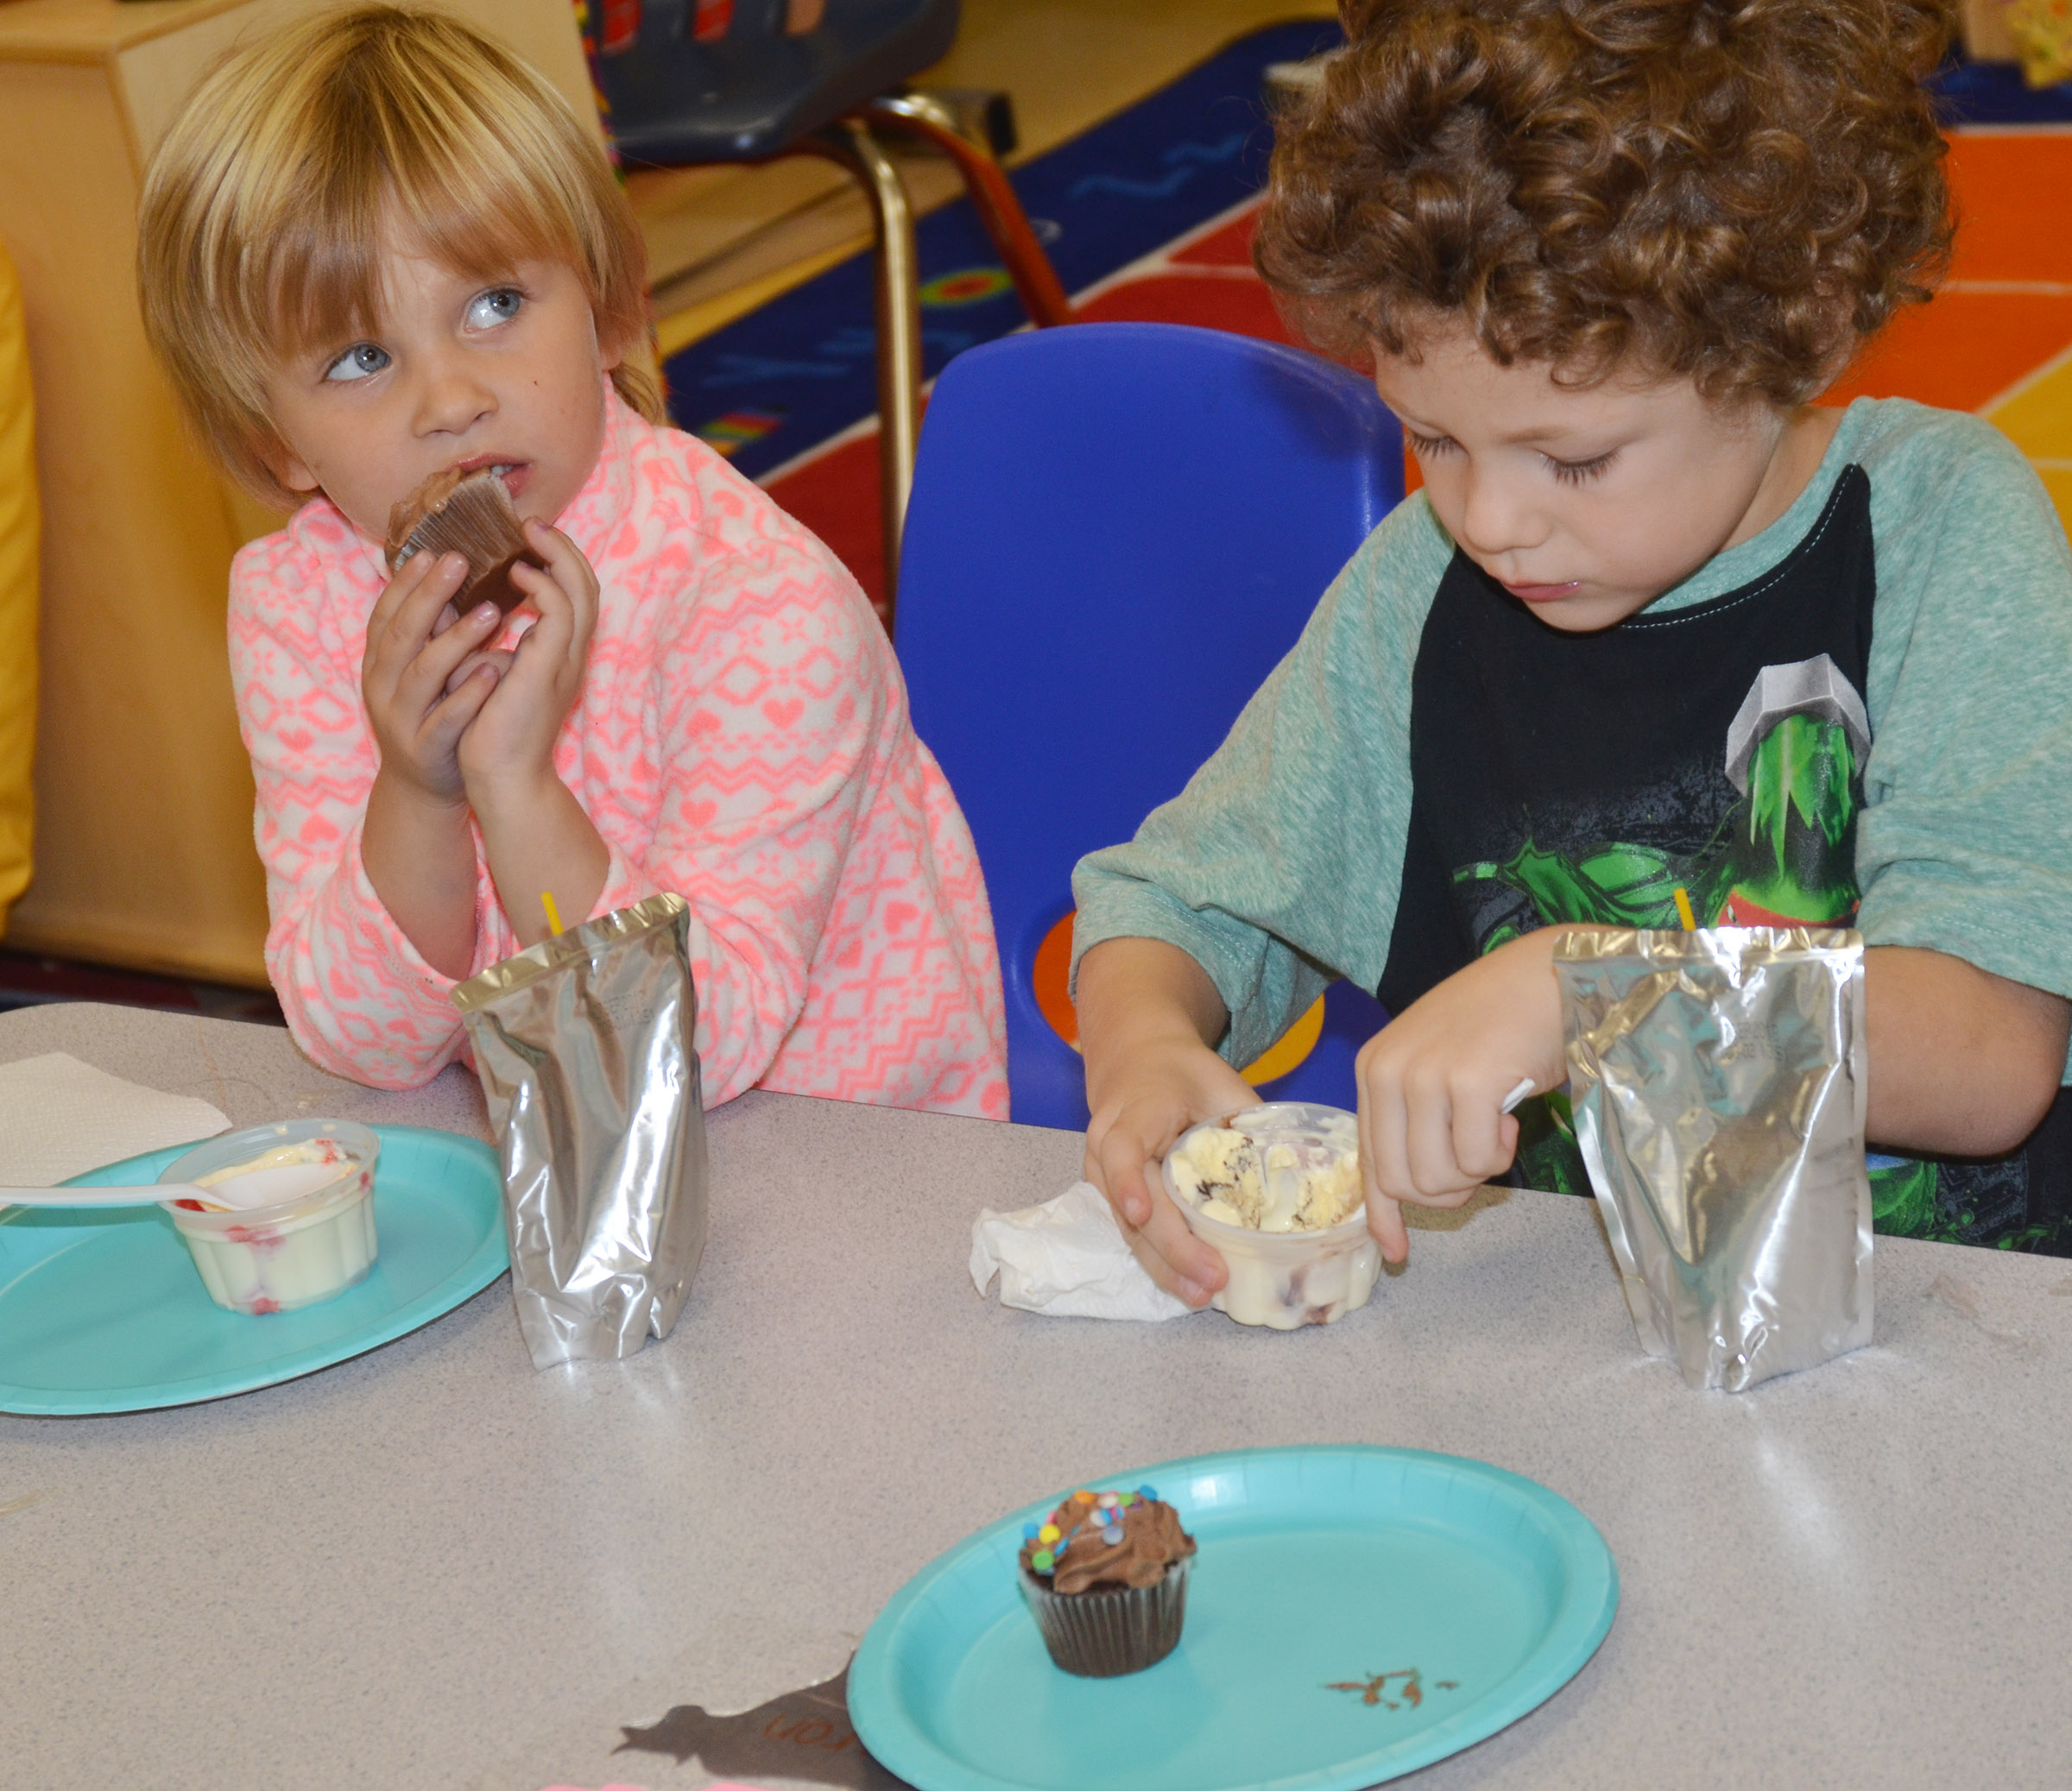 CES preschool students Elliana Morton, at left, and Zyron Young enjoy their ice cream and cupcakes.